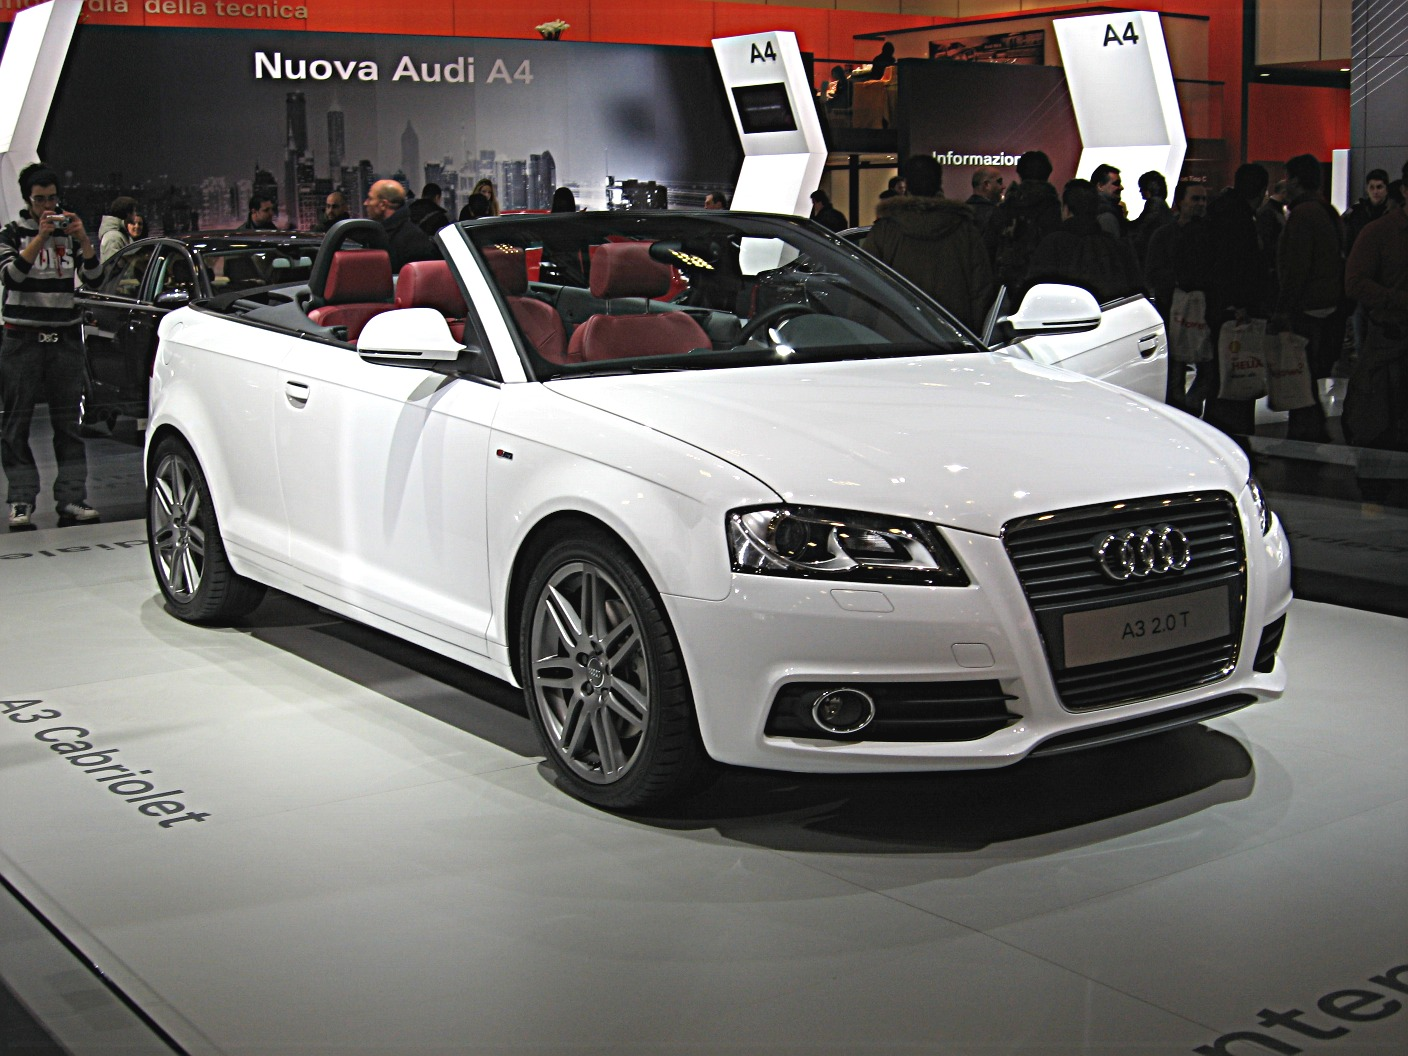 audi a3 cabriolet technical details history photos on better parts ltd. Black Bedroom Furniture Sets. Home Design Ideas